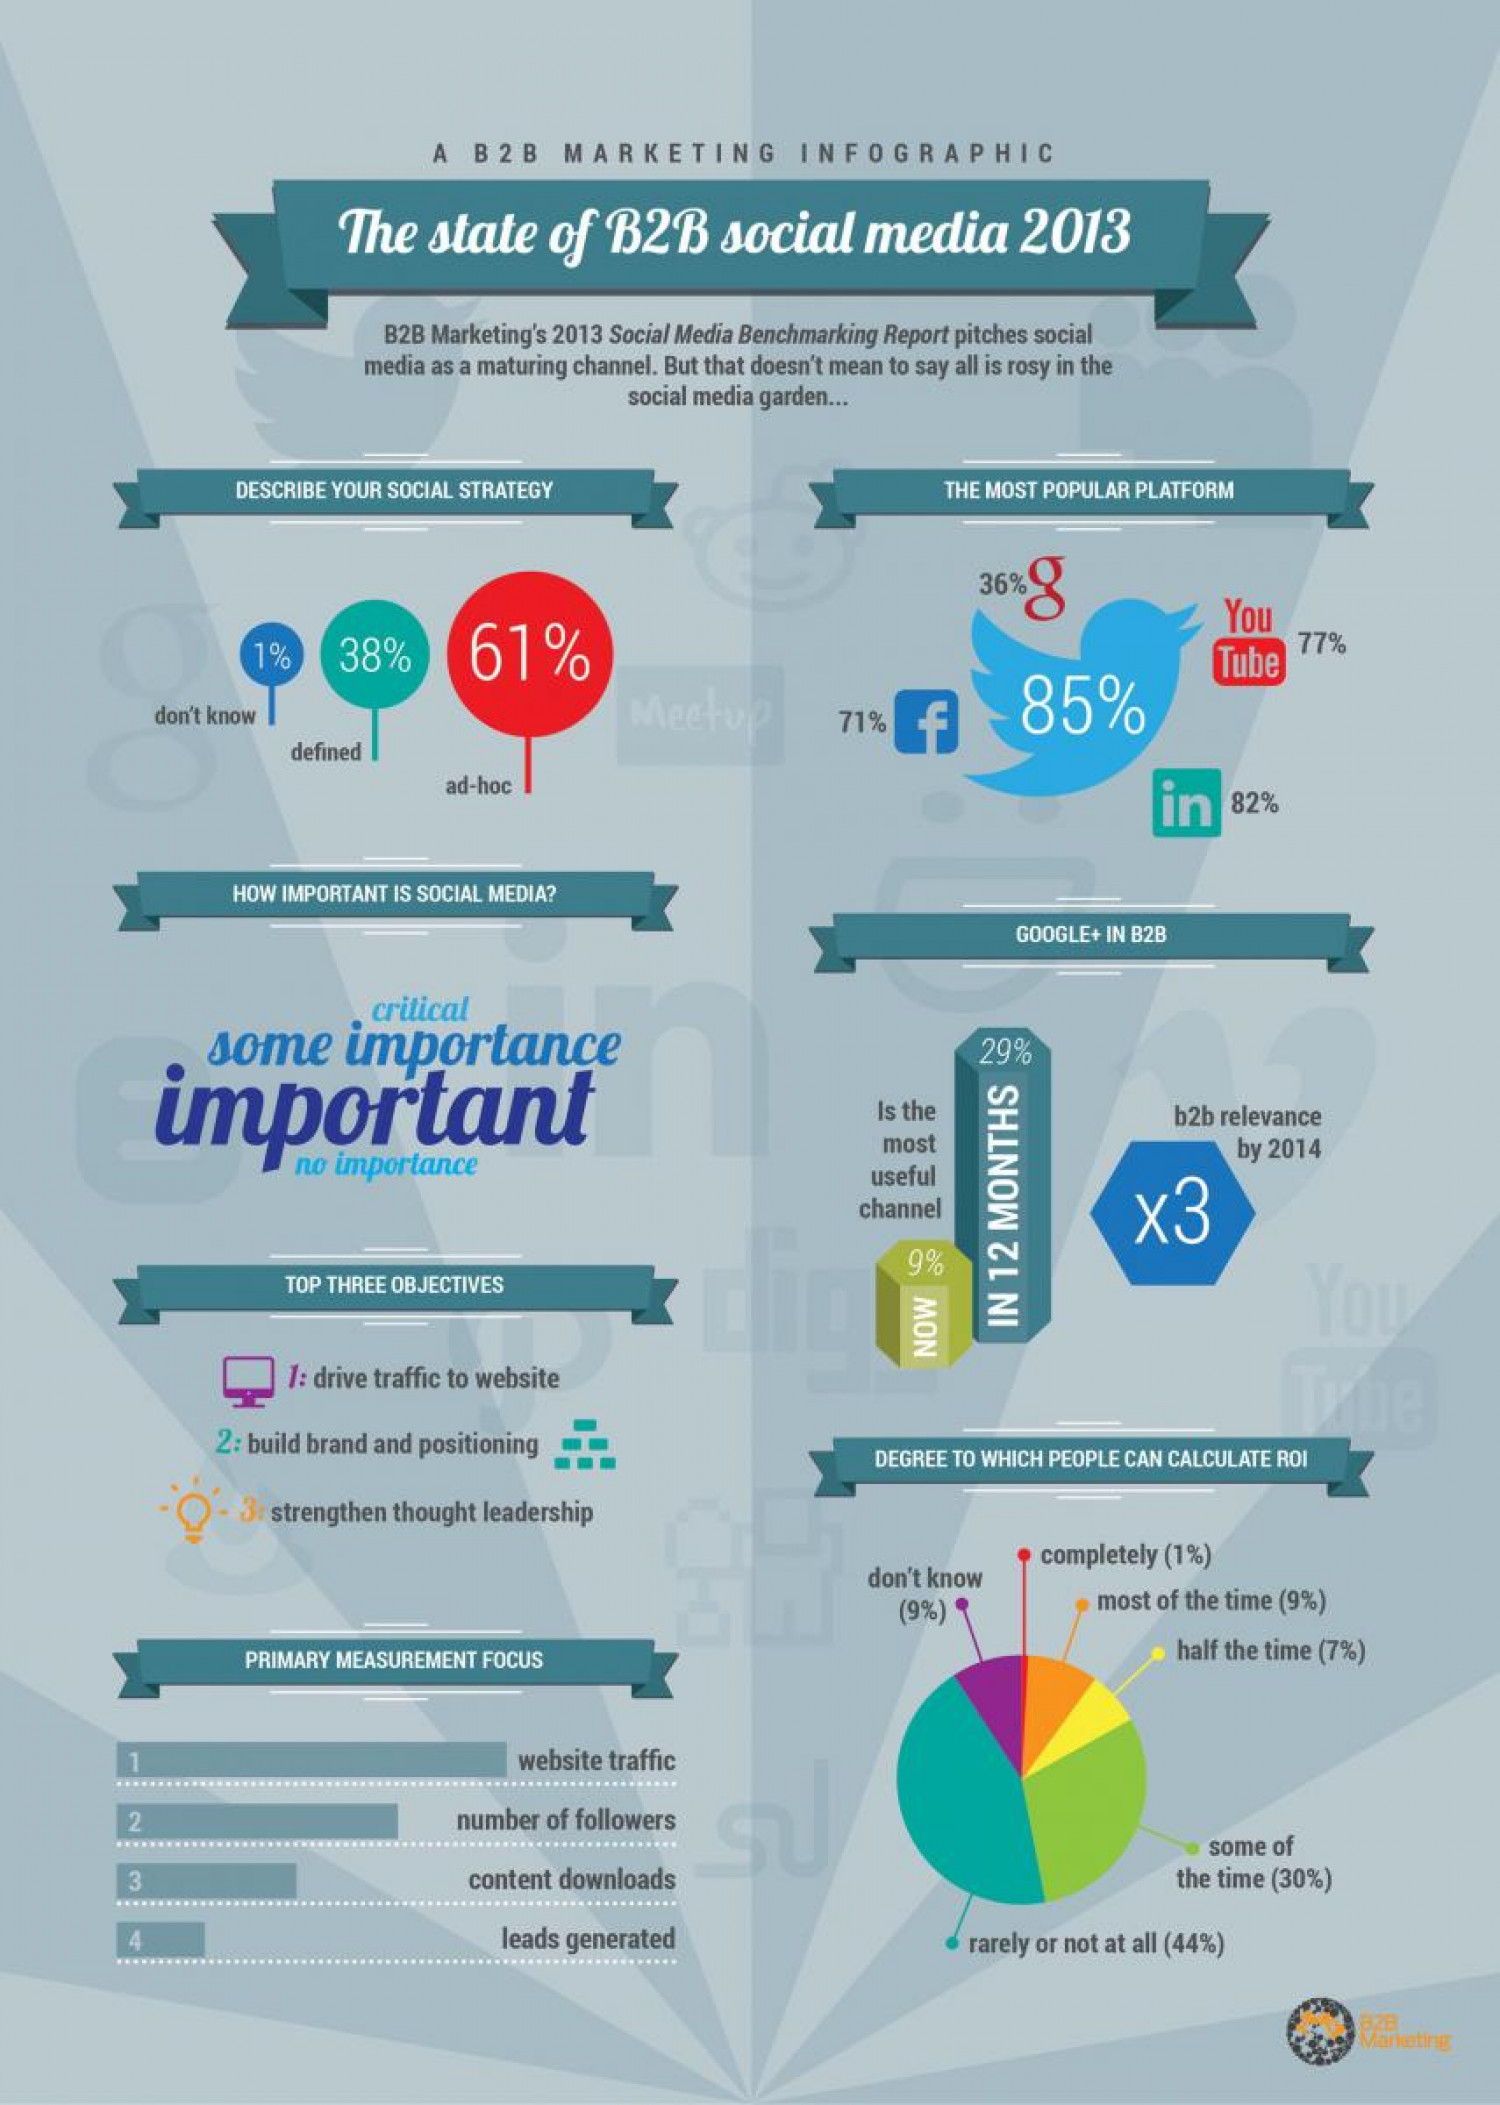 The state of B2B social media 2013 Infographic